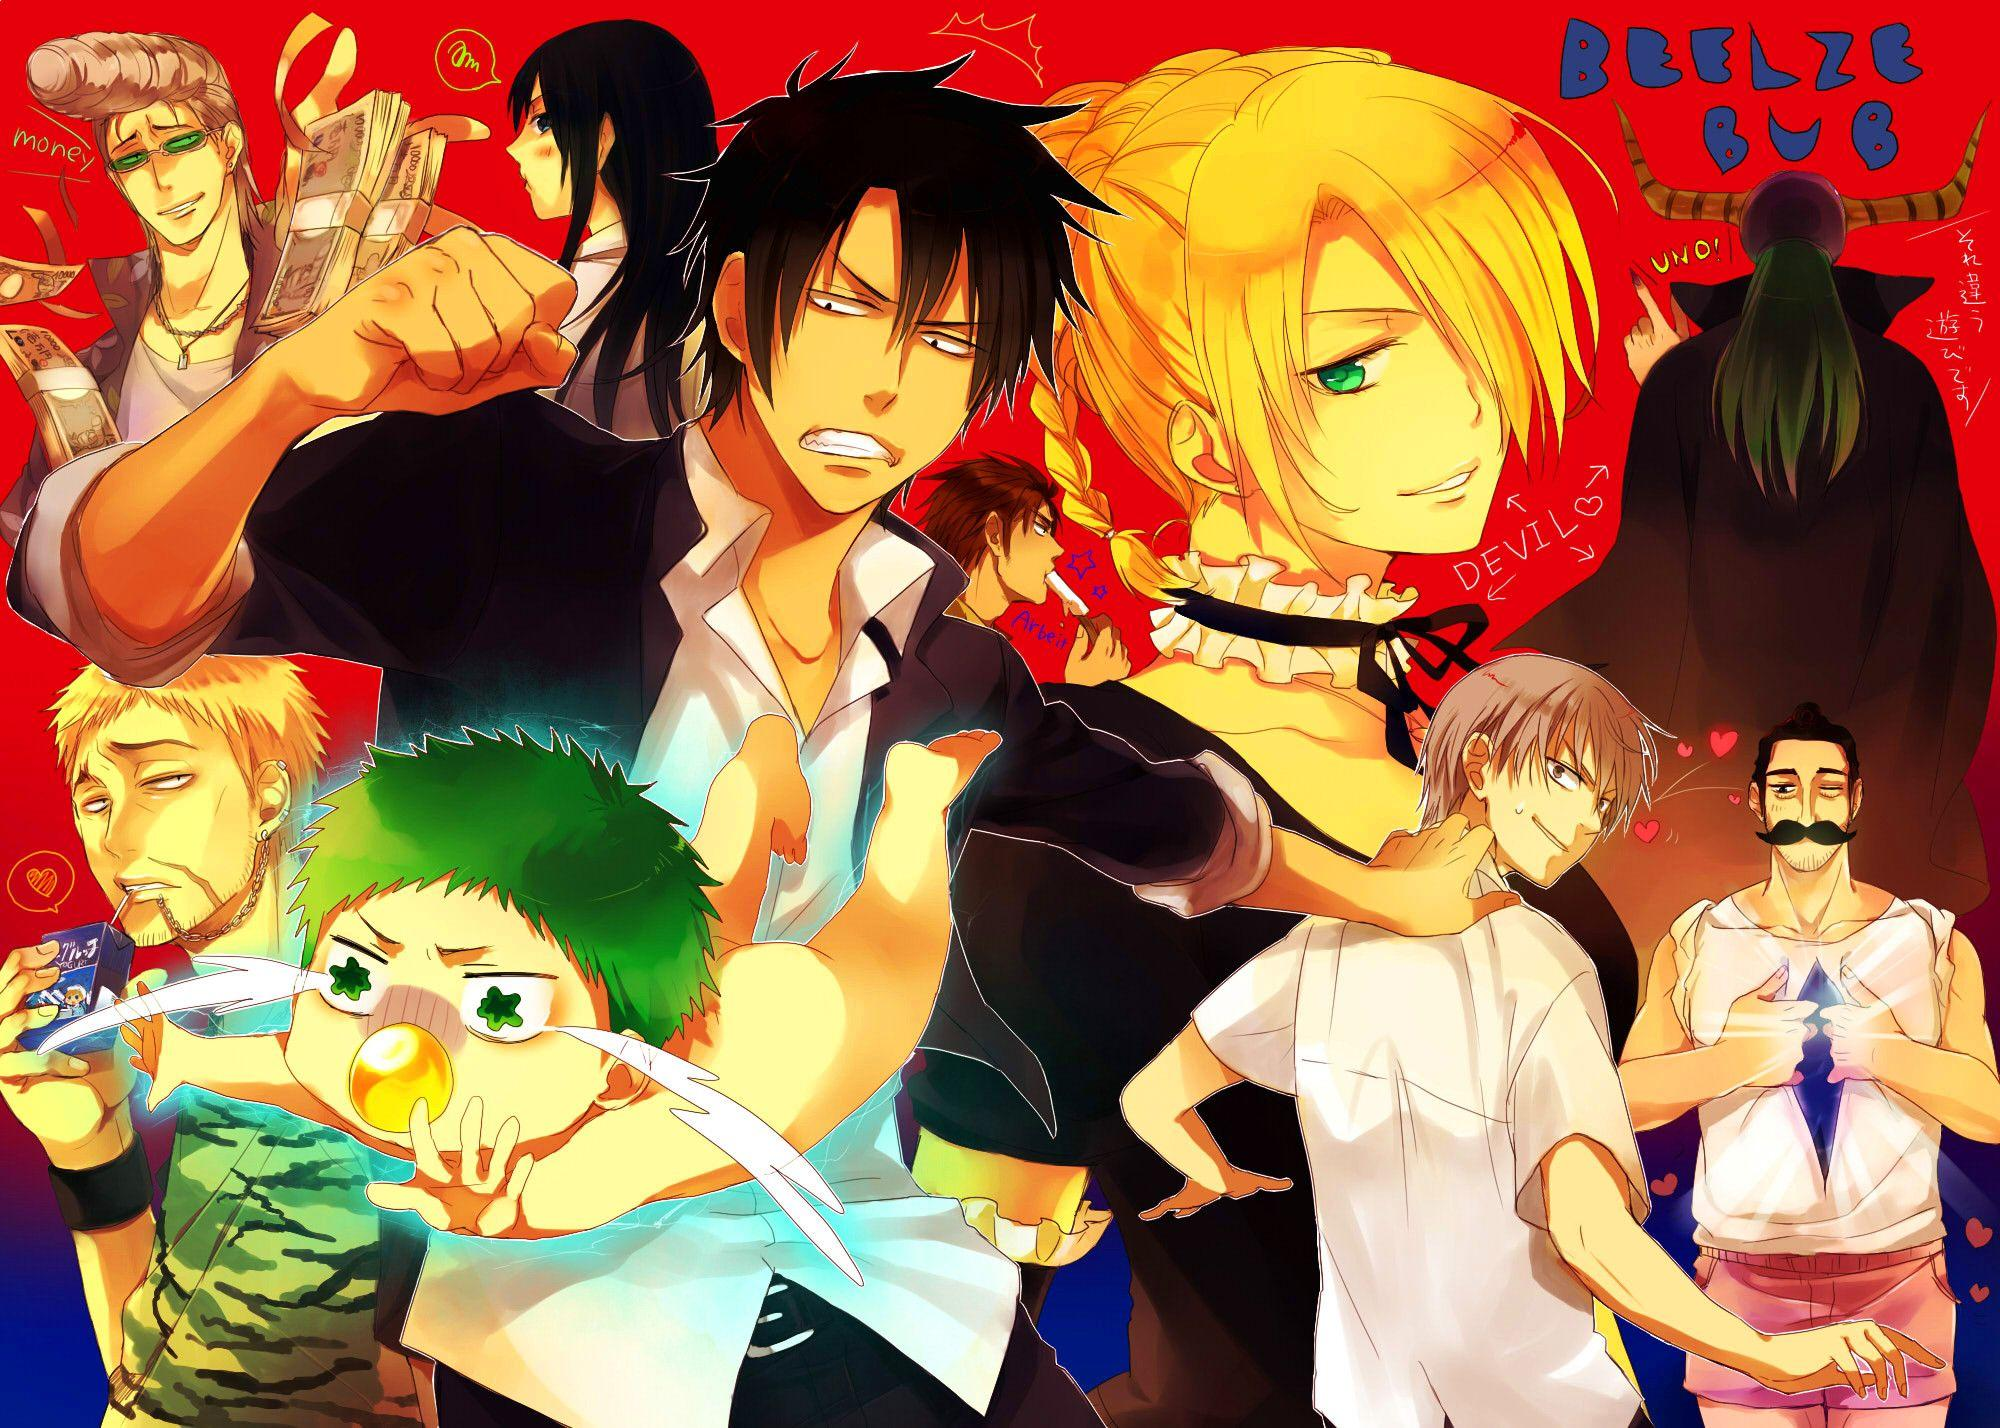 Anime Beelzebub Wallpaper | beelzebub | Pinterest | Wallpapers and ...